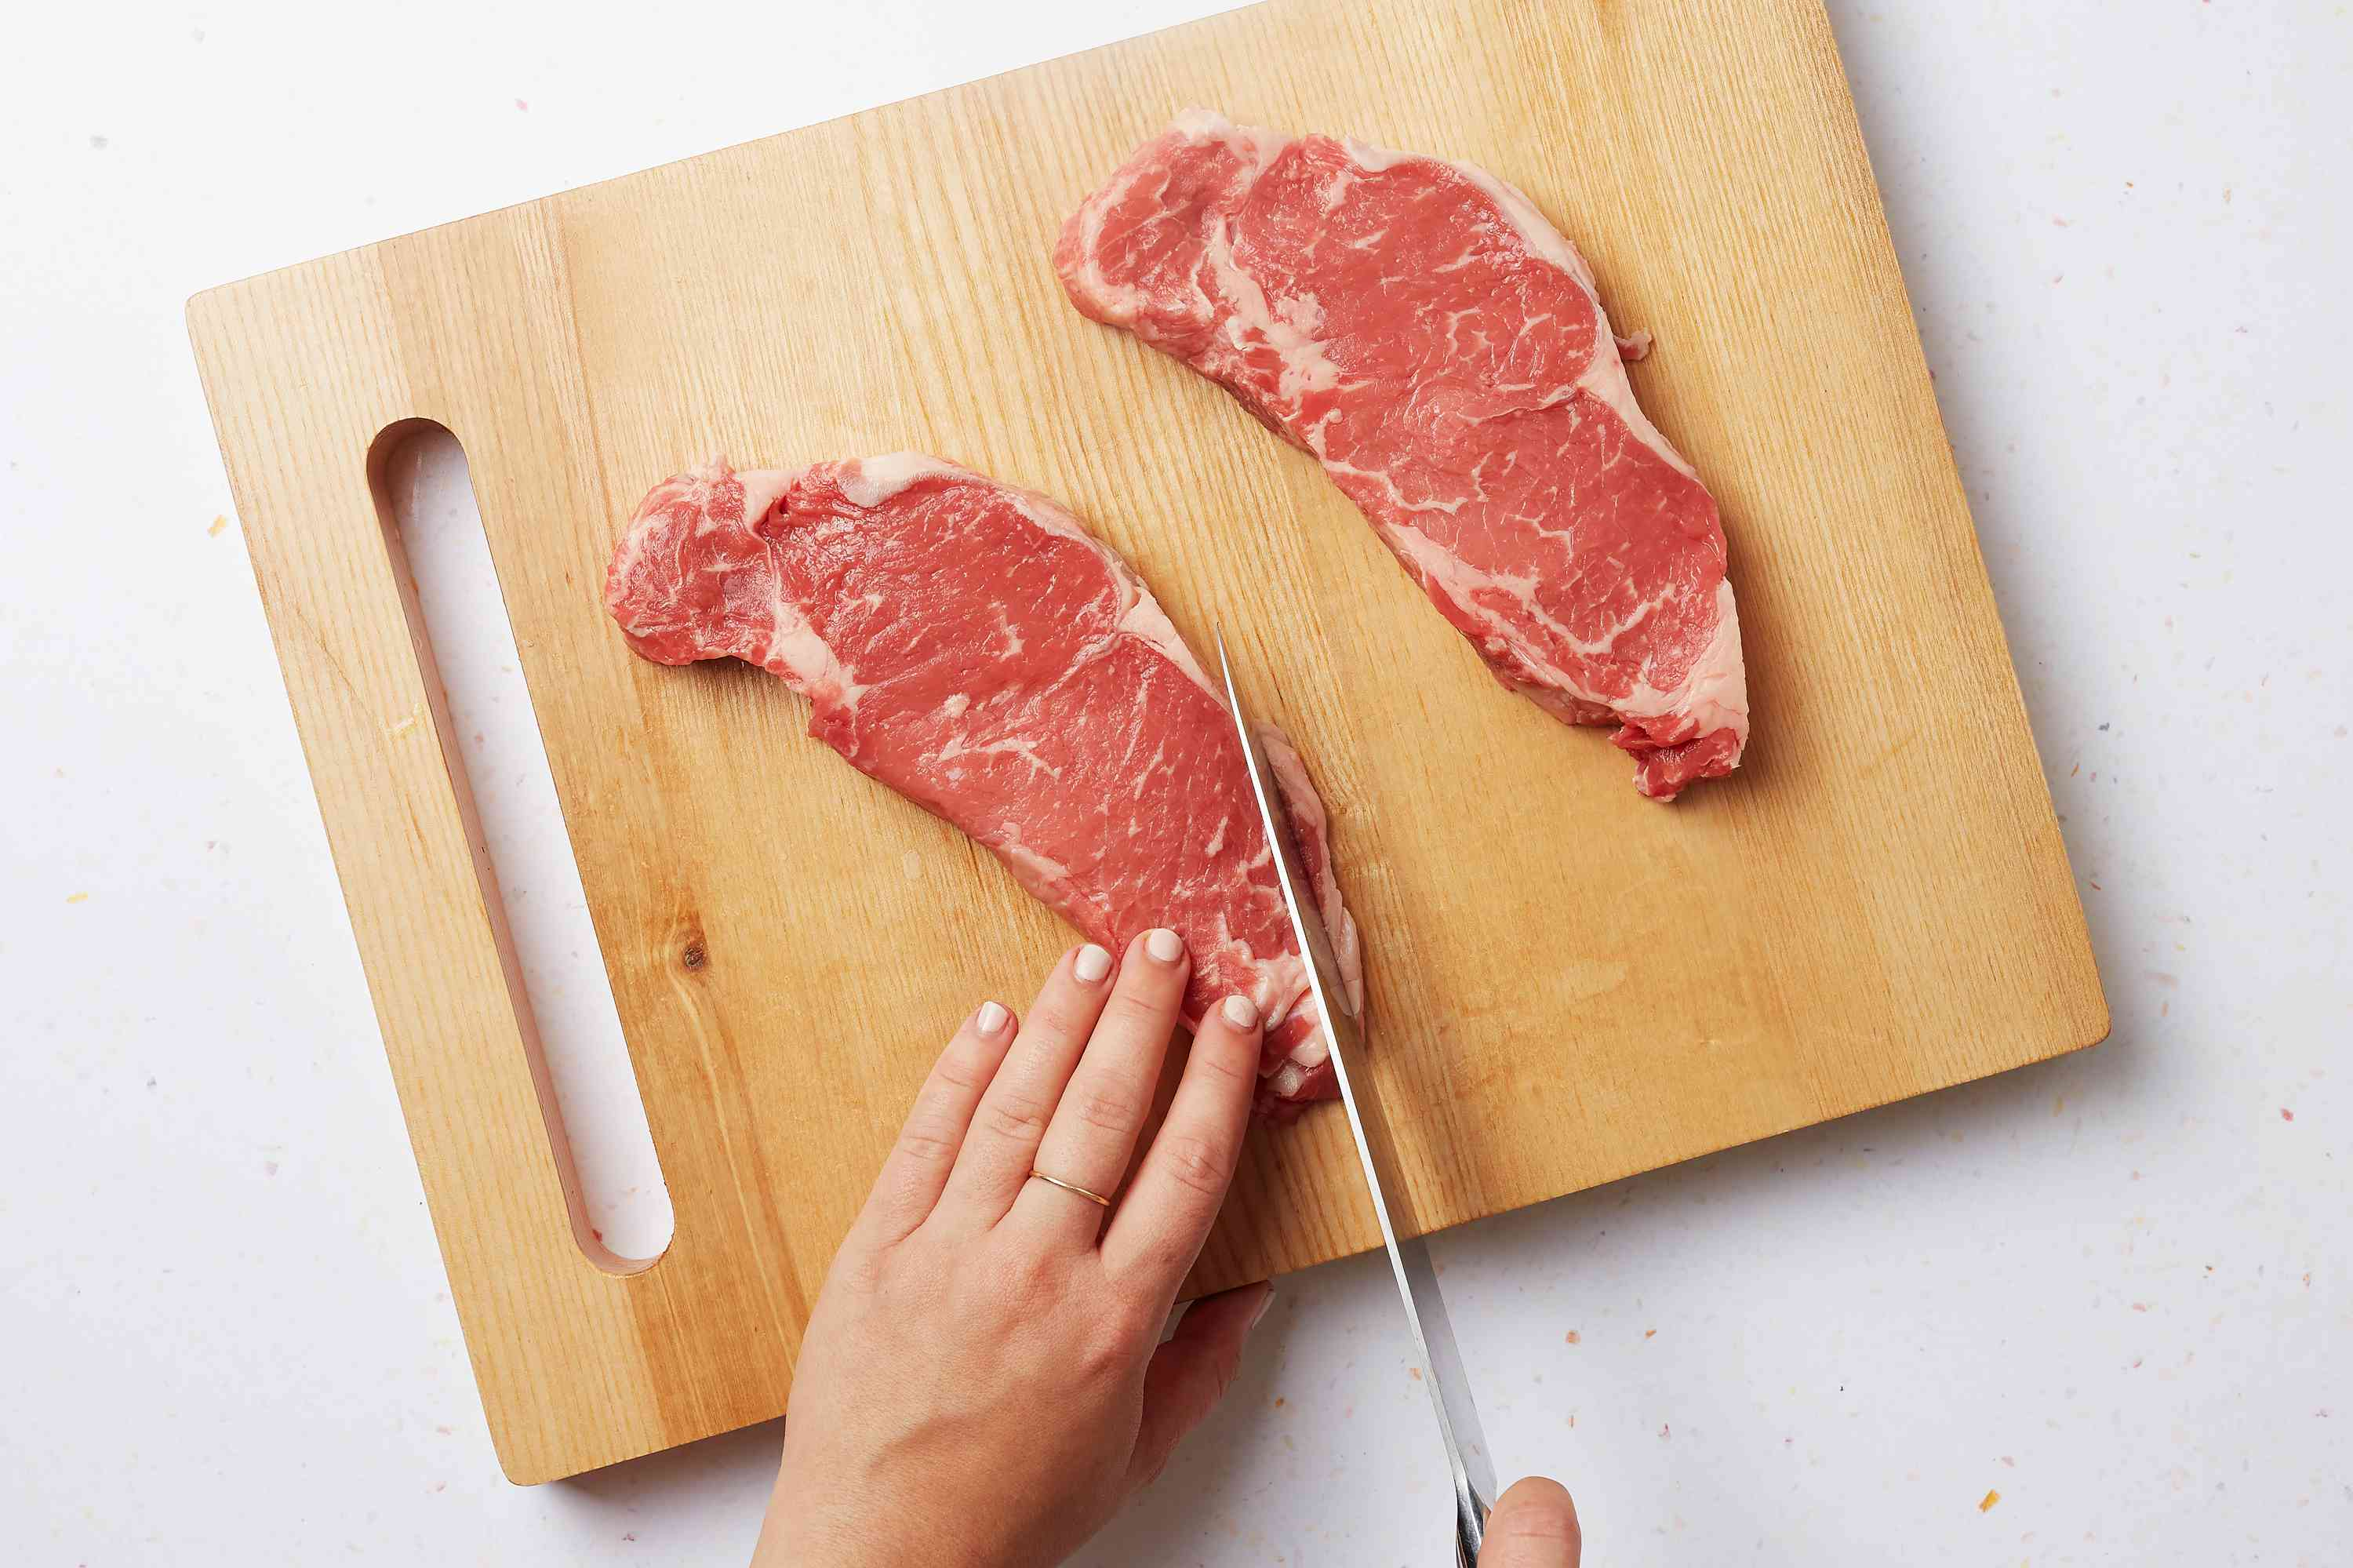 trim fat from the steaks on a cutting board